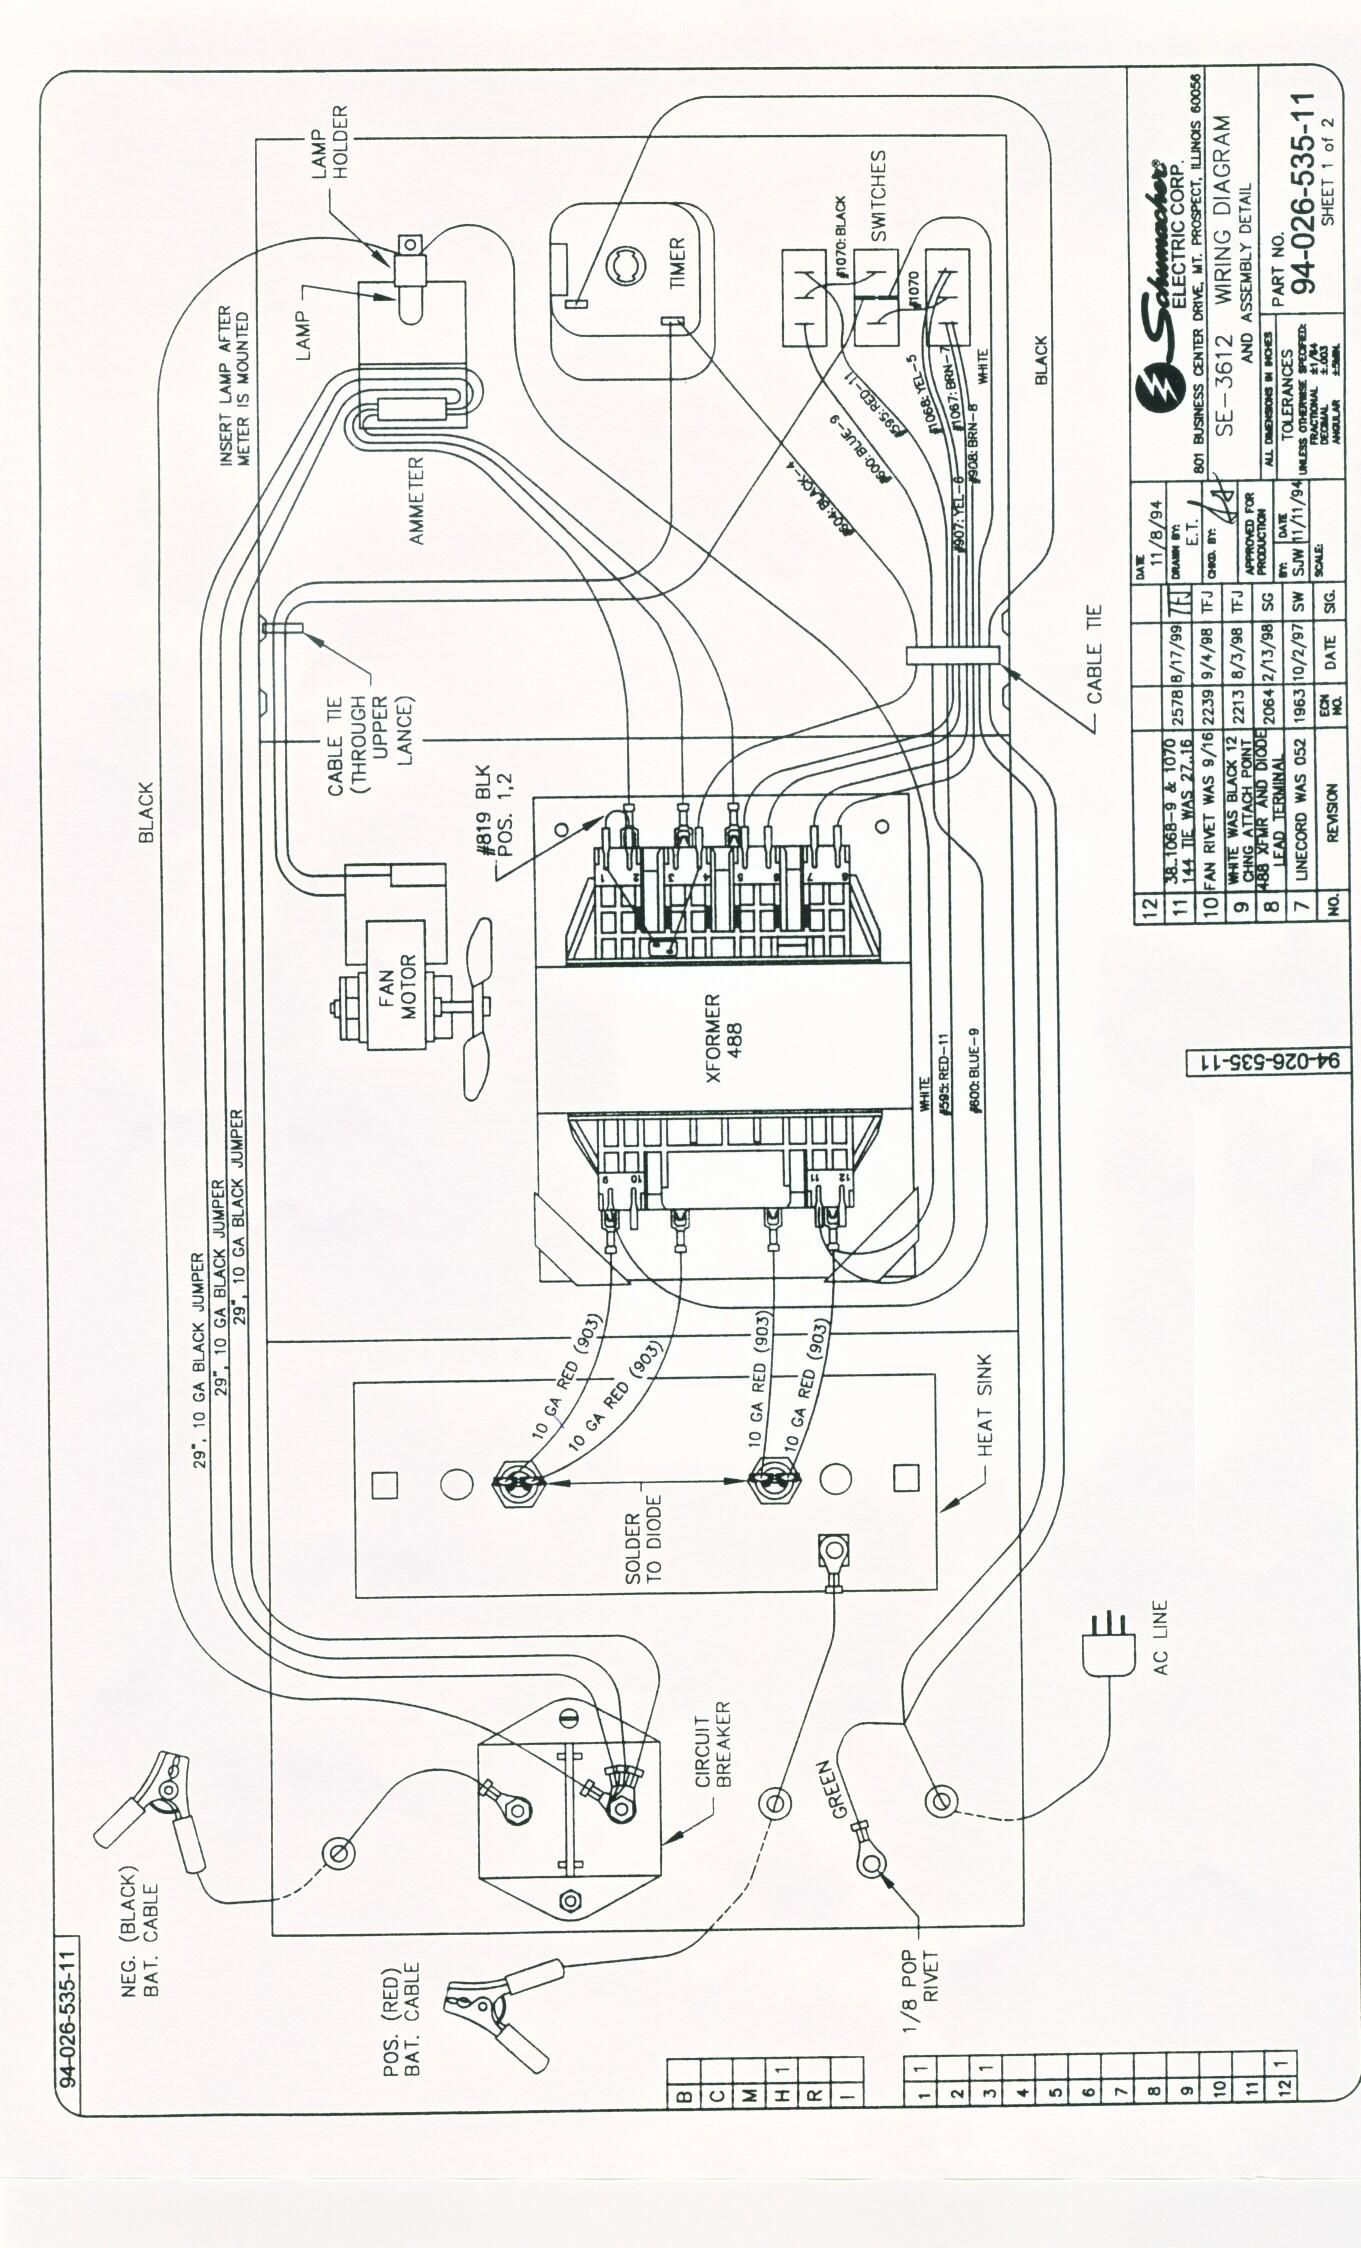 Wiring Diagram For Solar Battery Charger 2000 Chevy Silverado Factory Radio Schumacher